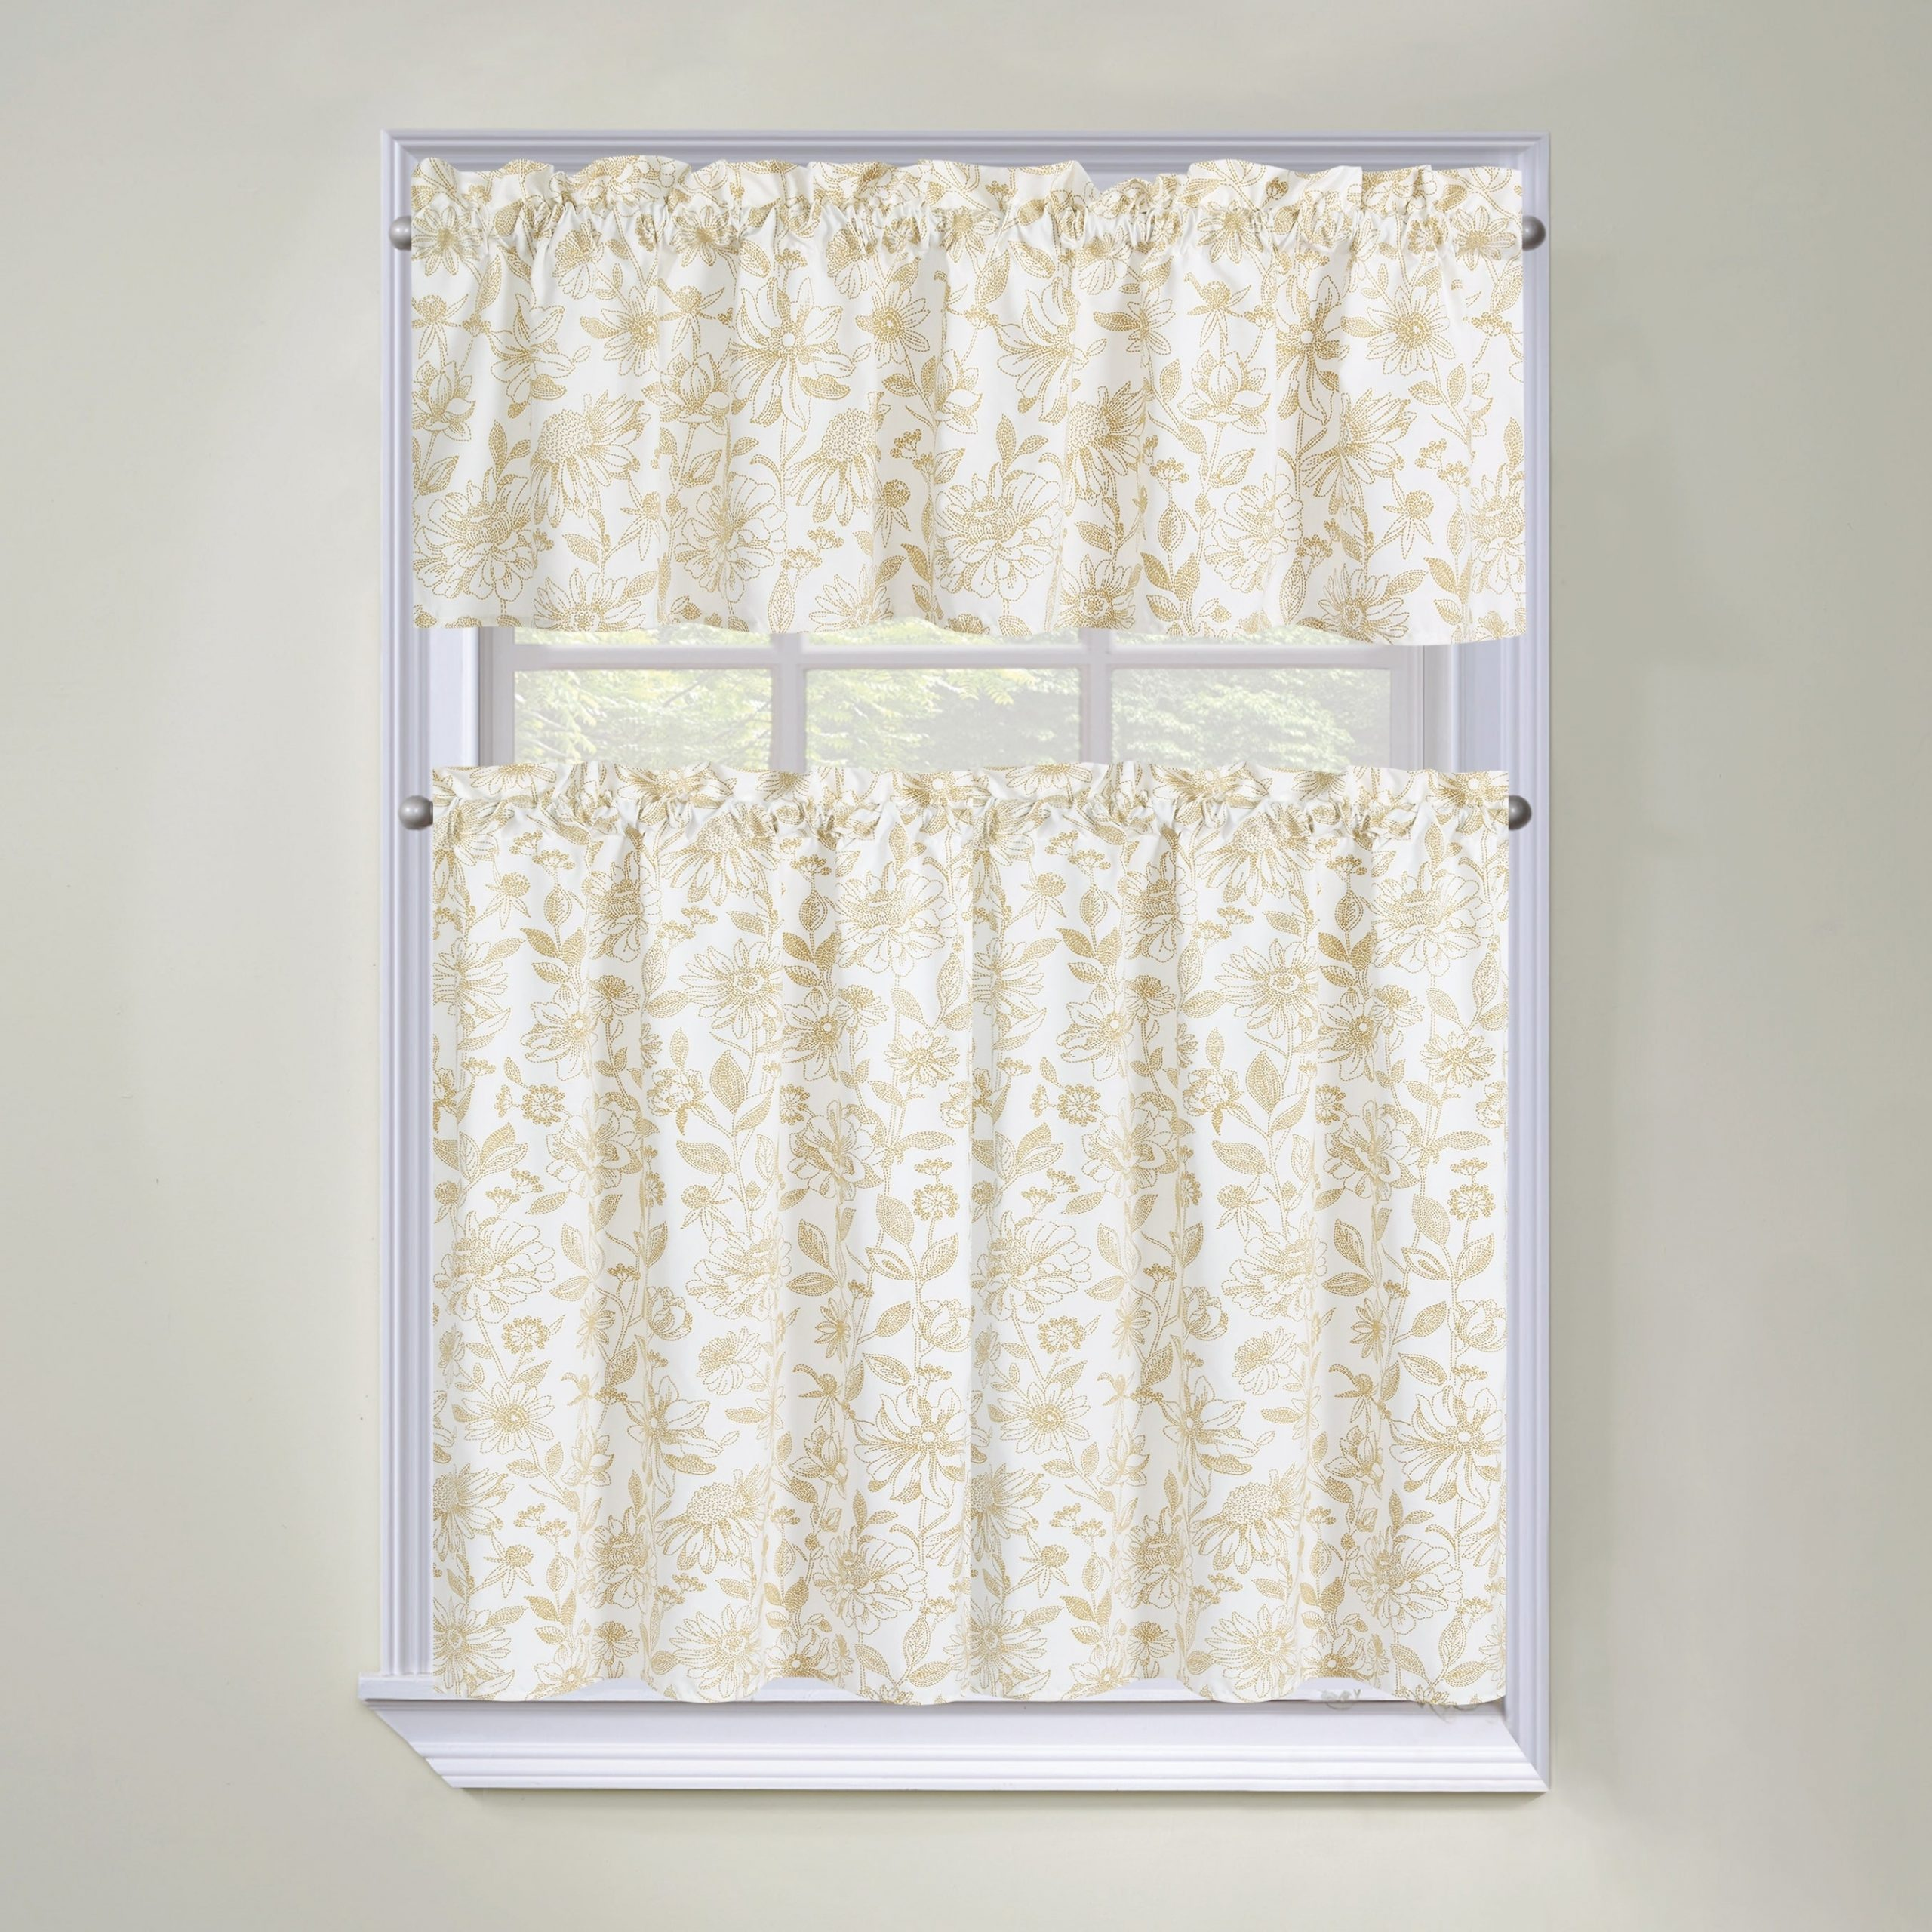 Regal Home Collections Amelia Floral 3 Piece Tier Curtain And Valance Set – 60 W X36 L Inches Within Seabreeze 36 Inch Tier Pairs In Ocean (View 9 of 20)